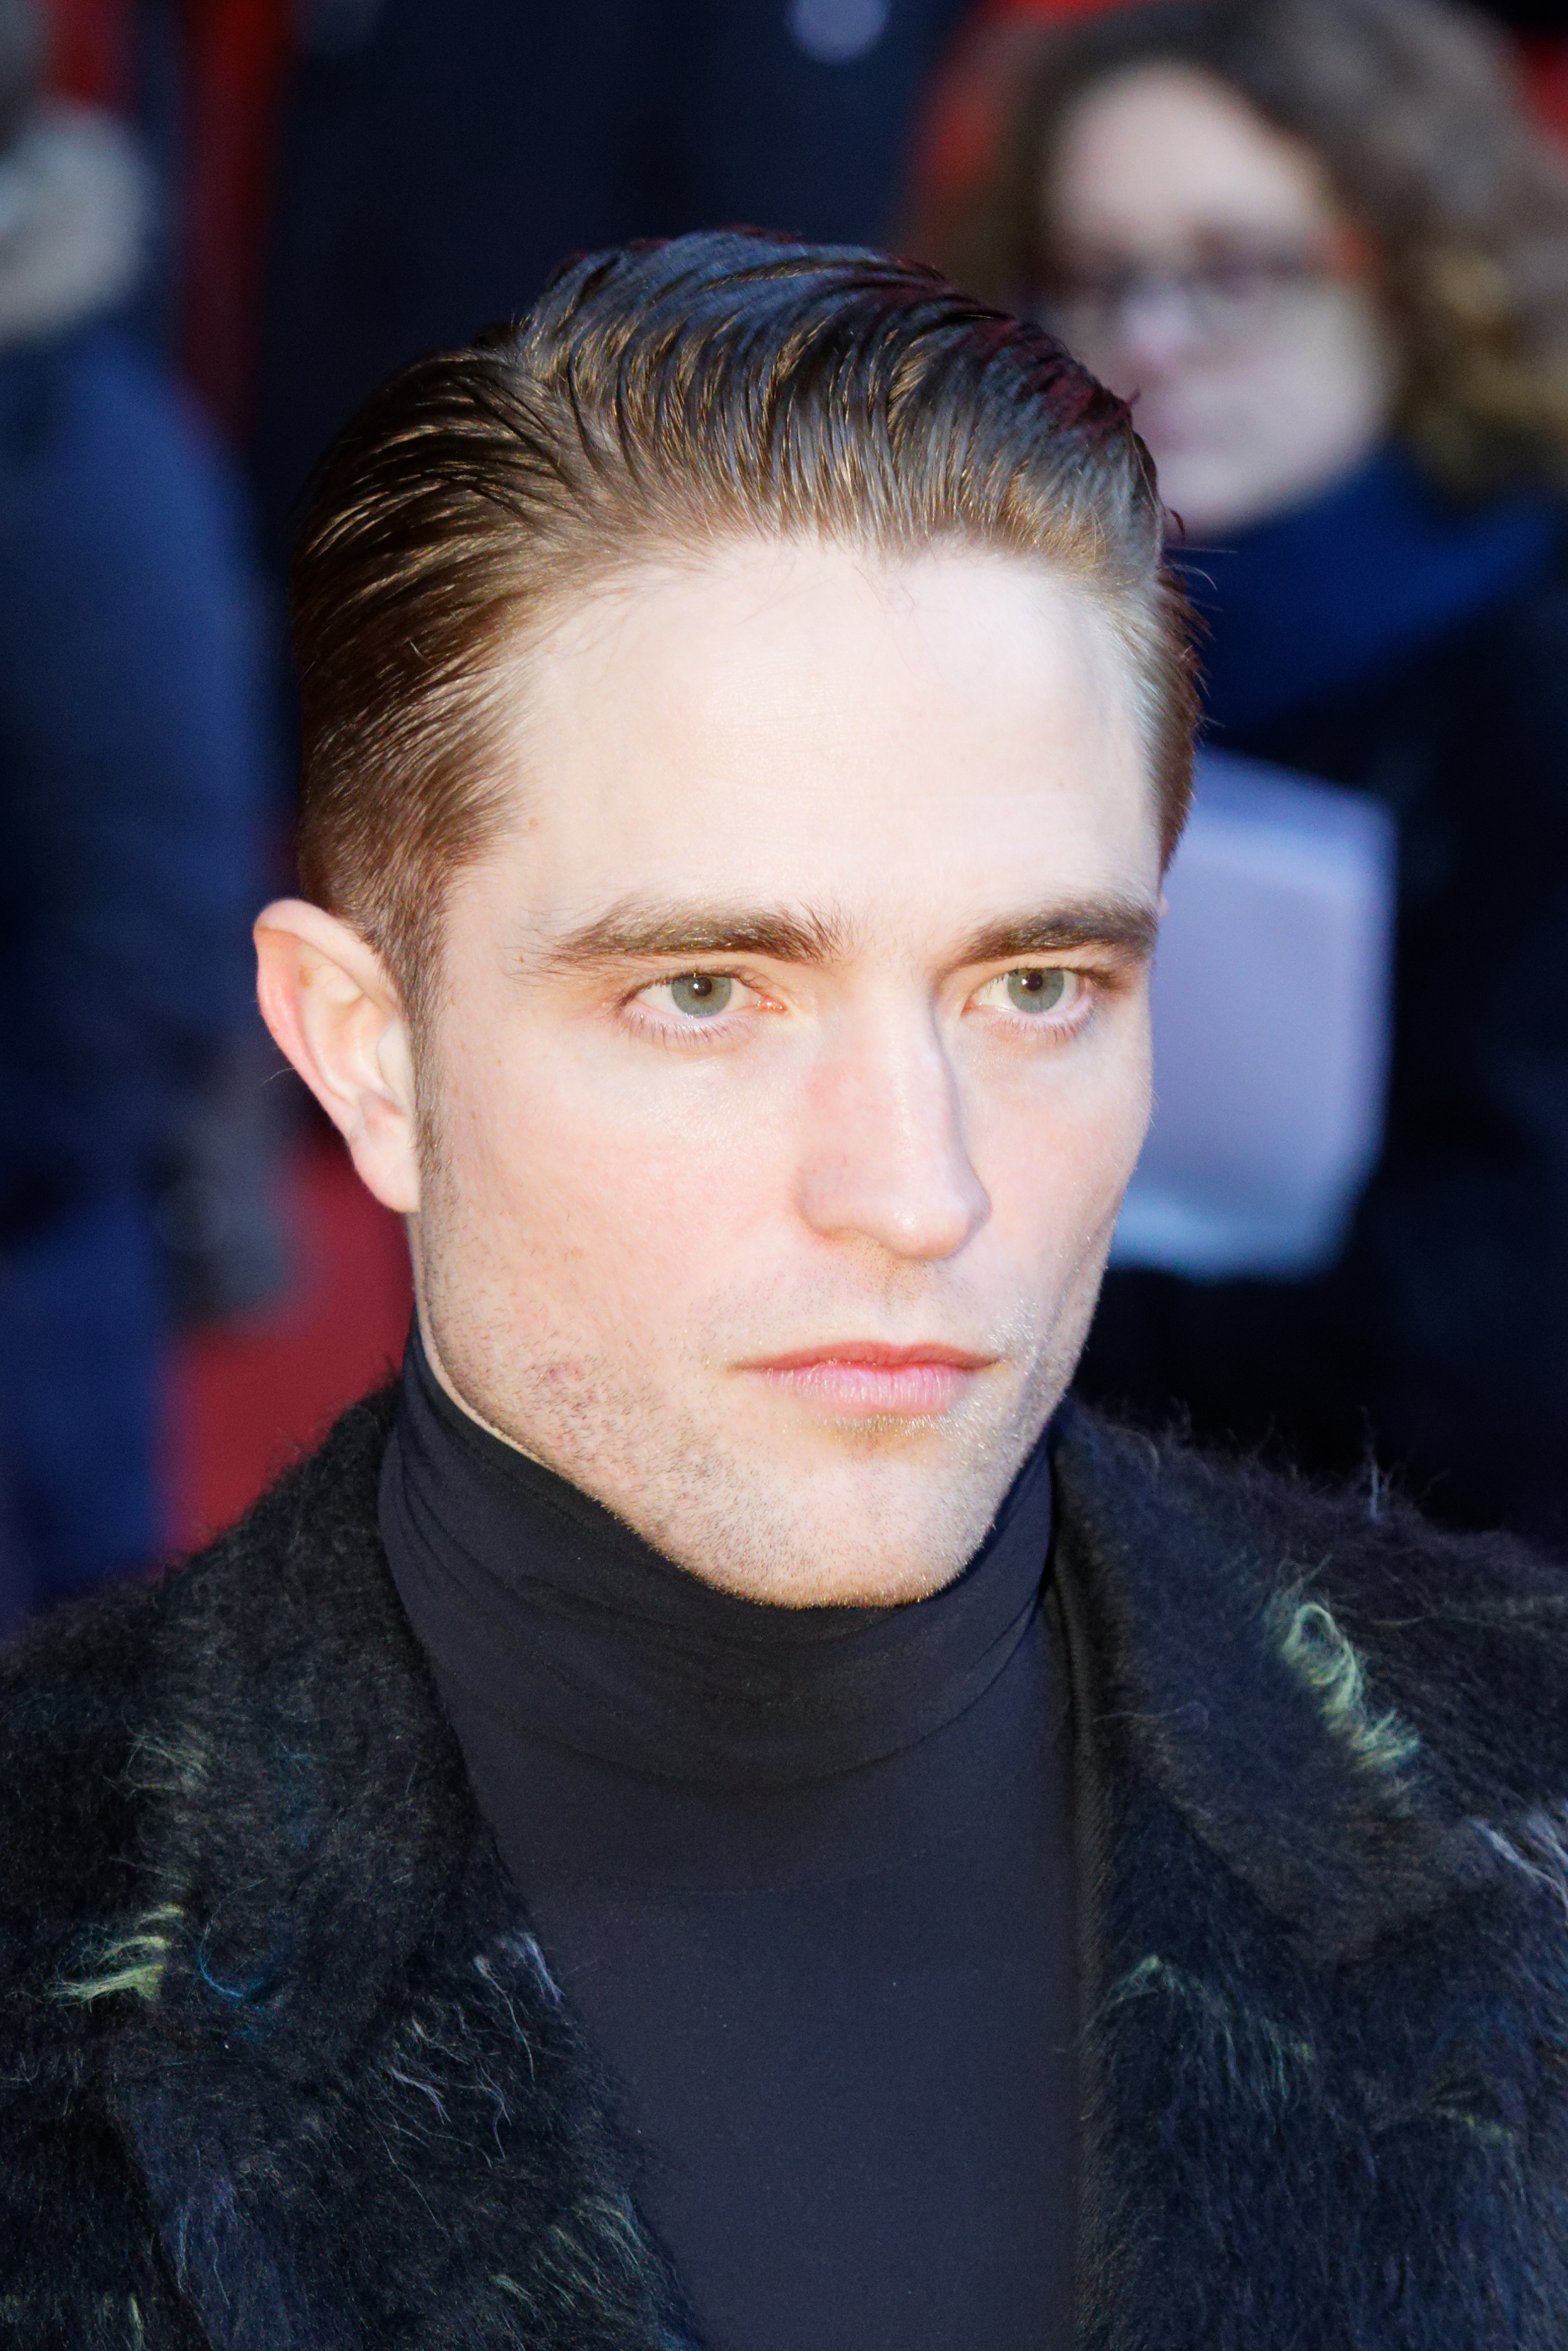 Robert Pattinson (born 1986)